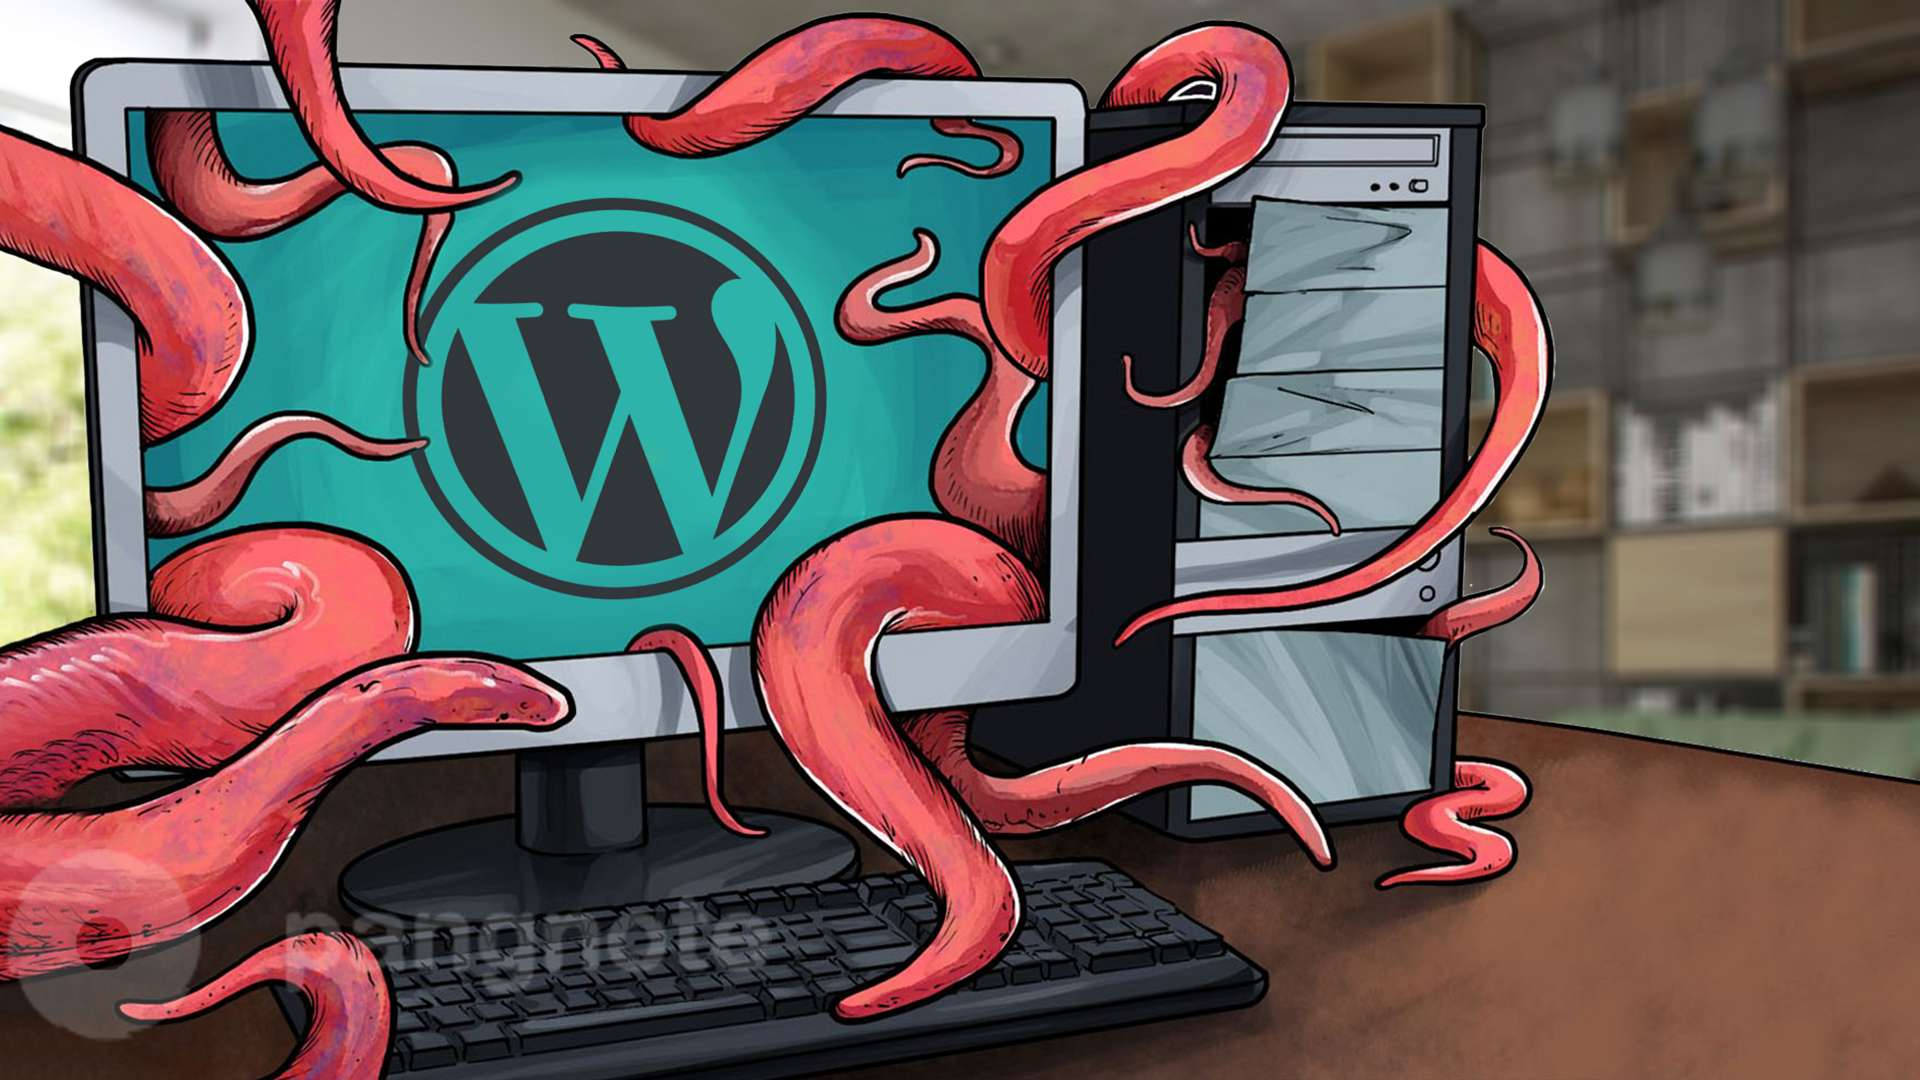 Mass attack on sites with the WordPress engine